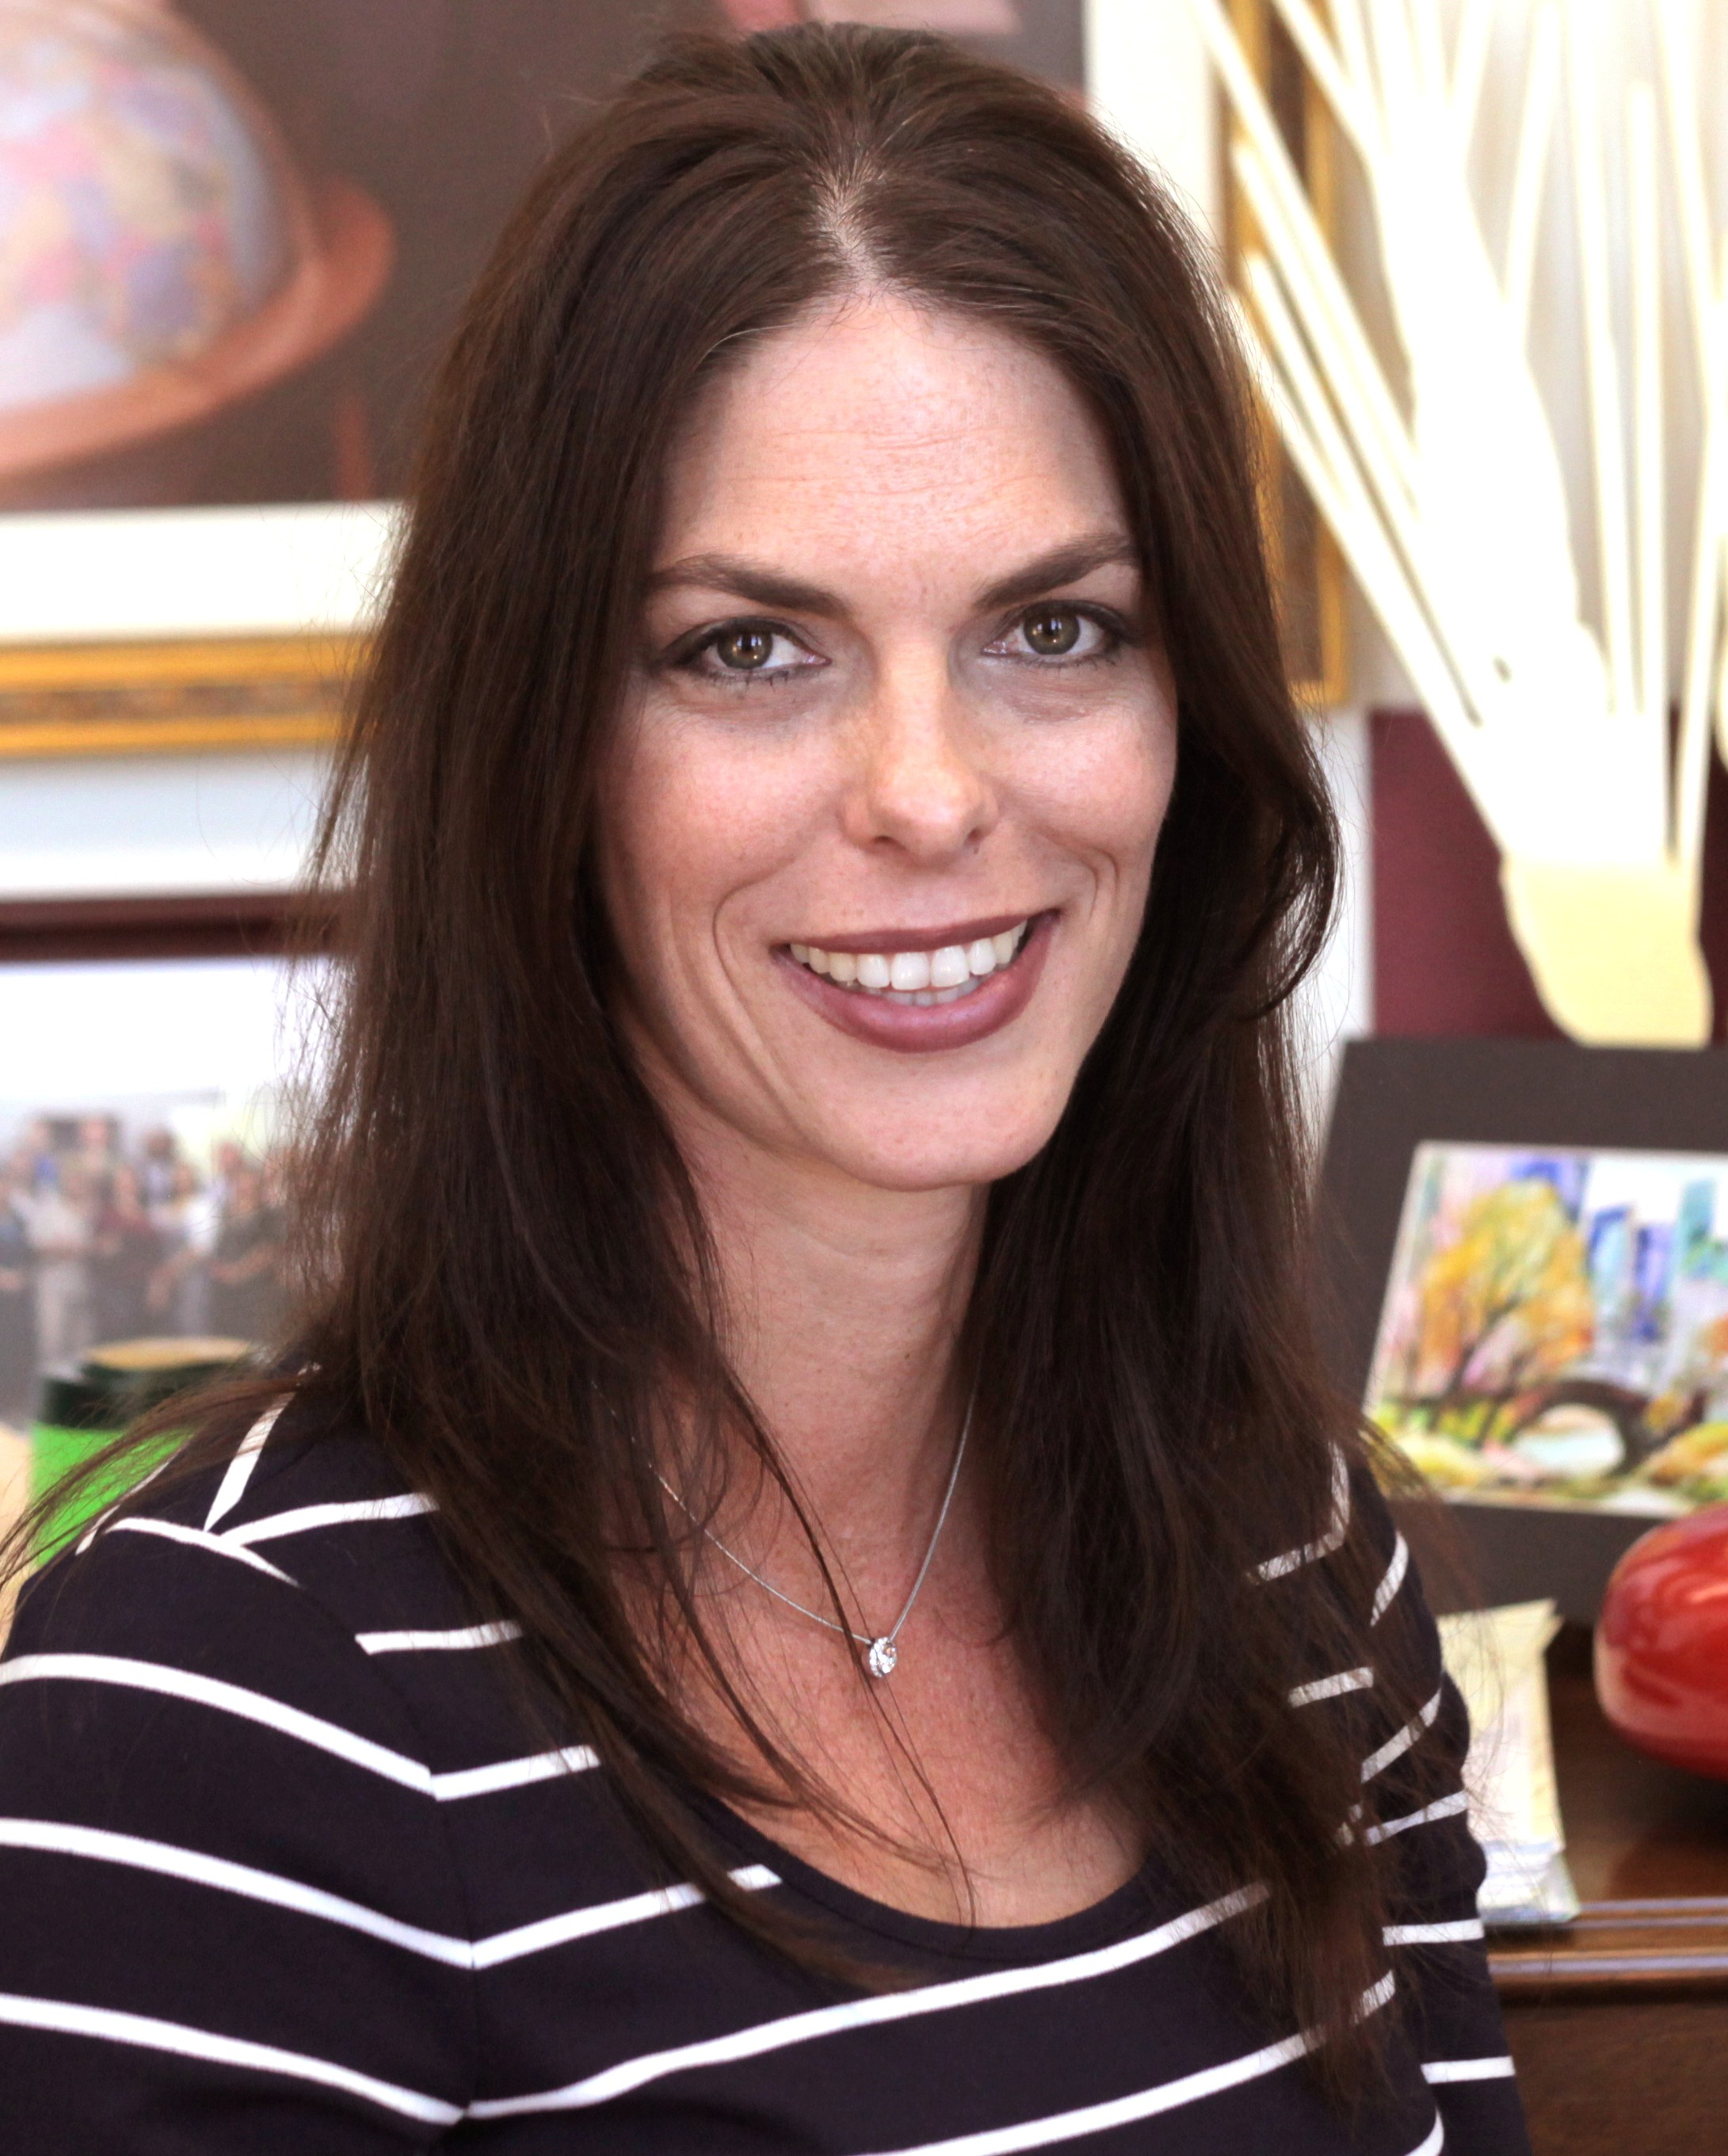 julie_borlaug_head_shot.jpg